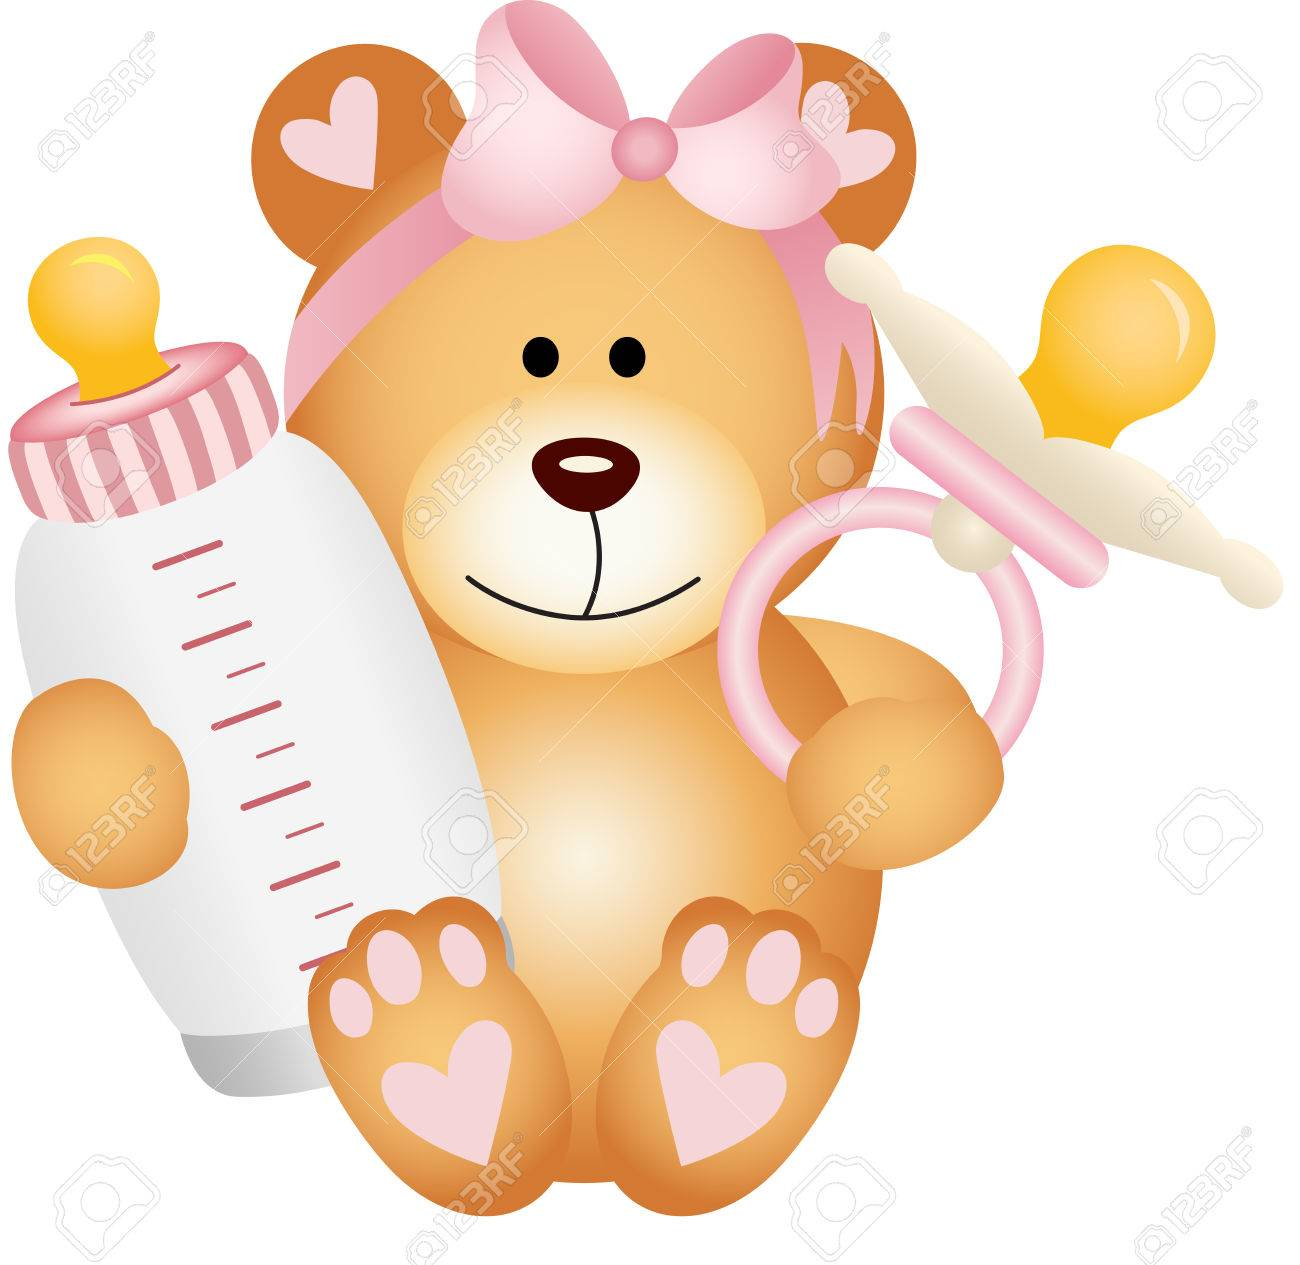 Baby girl teddy bear with baby pacifier and bottle milk.